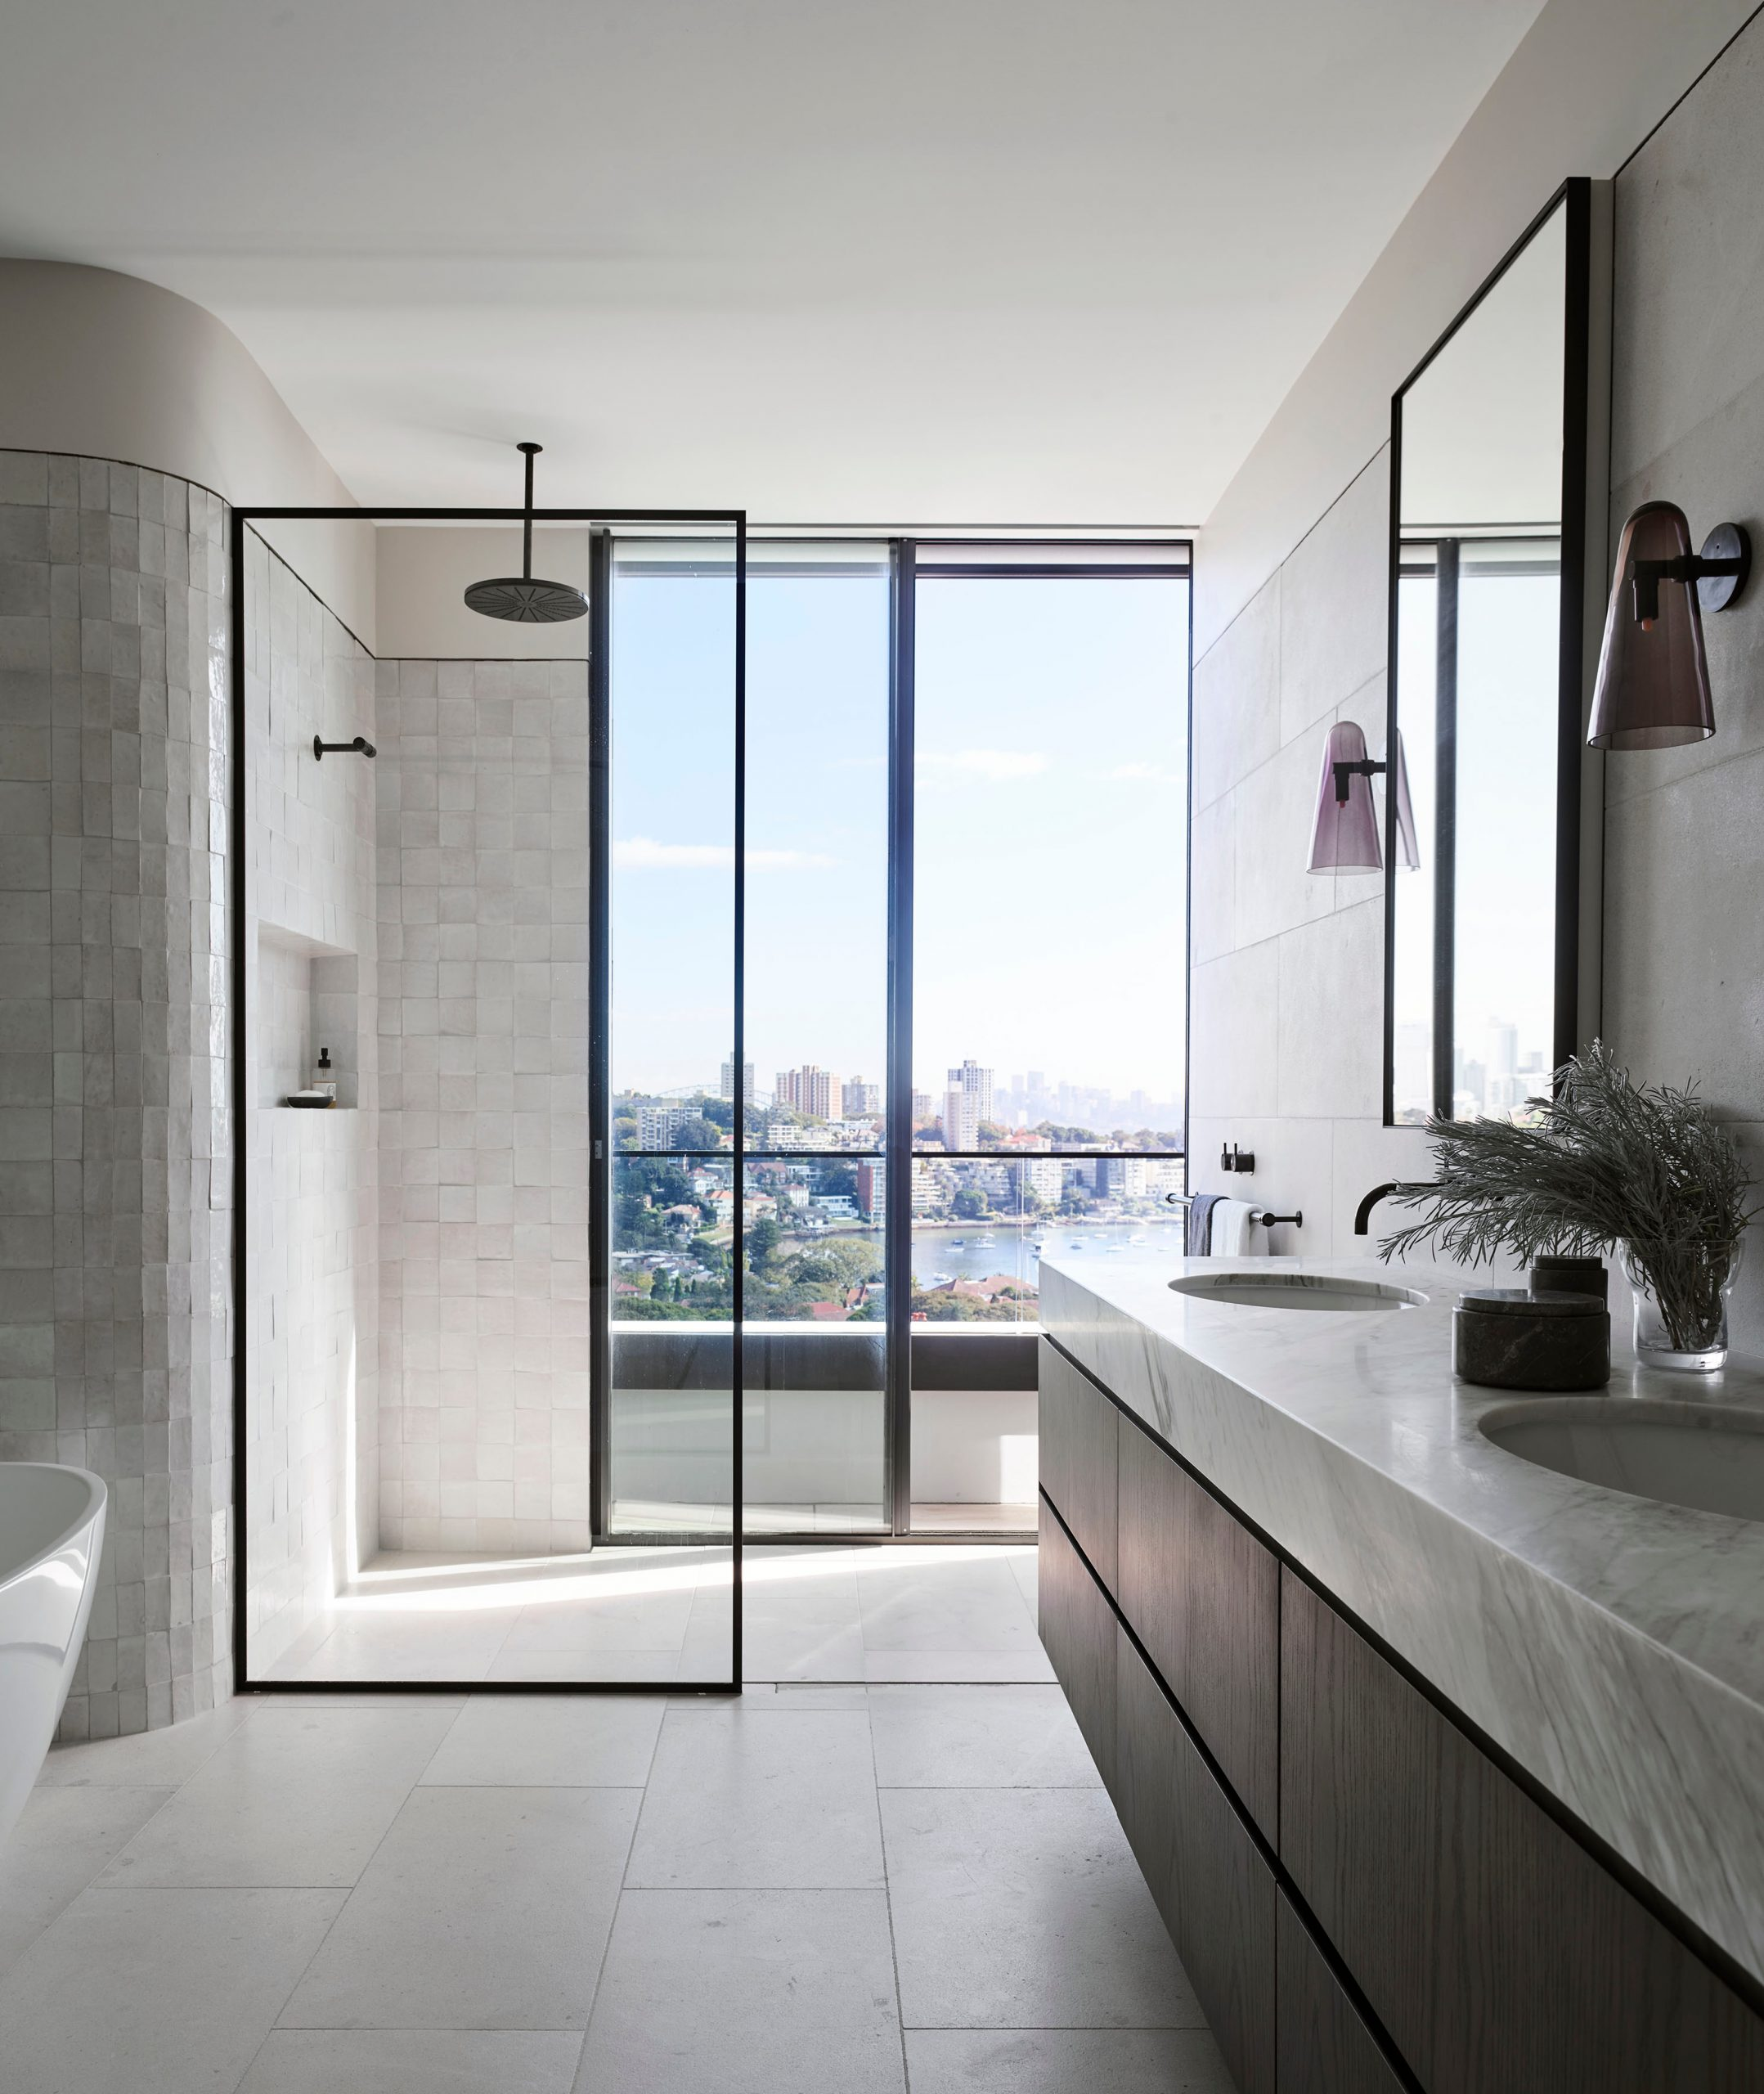 Shower with city skyline view